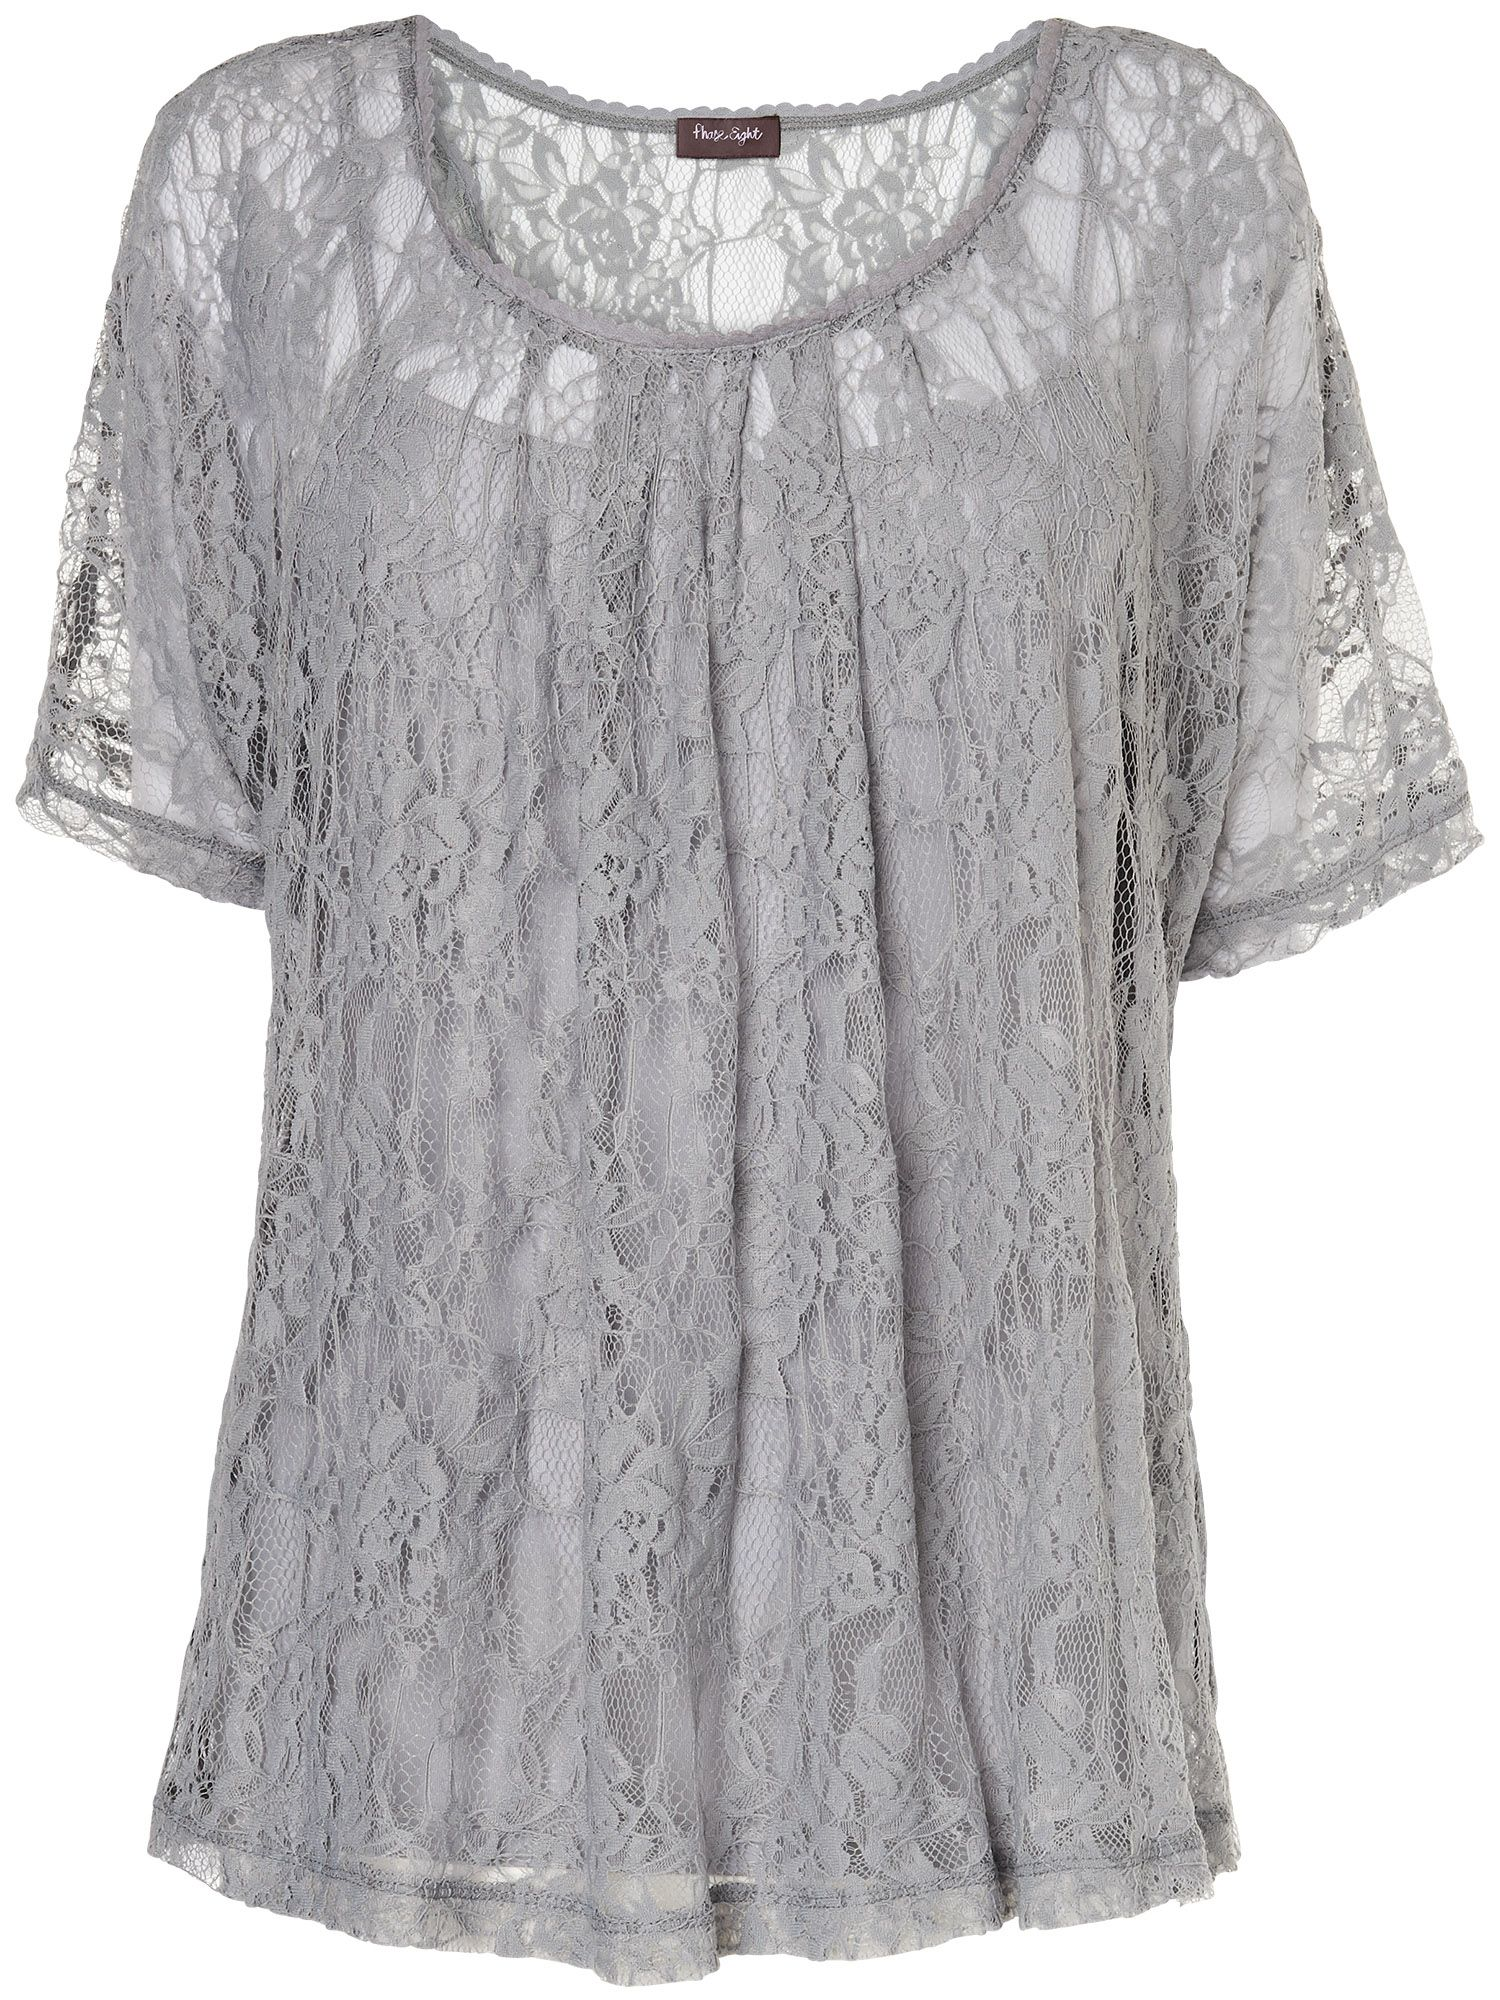 Verity lace top